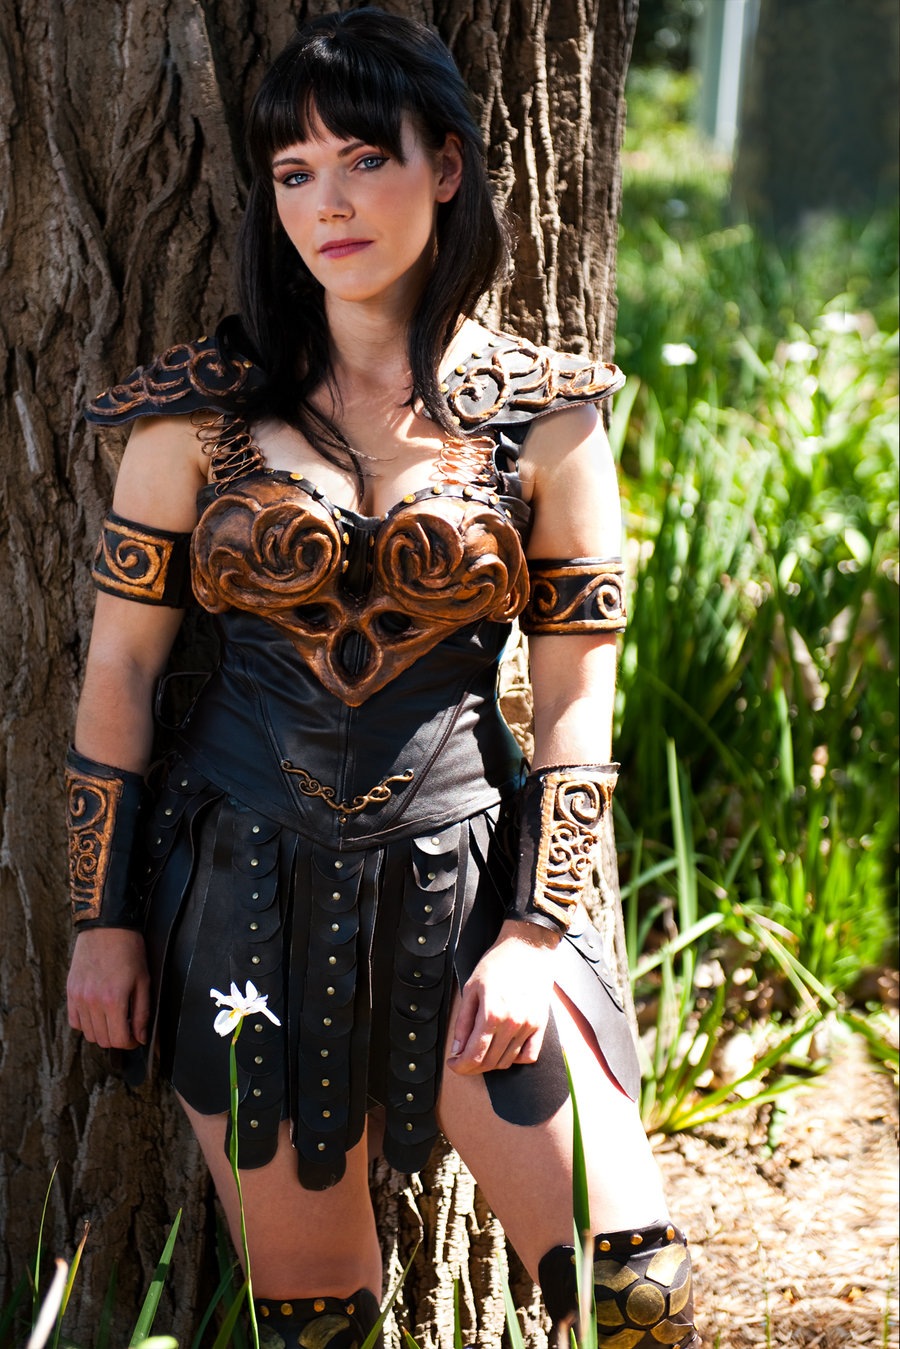 Xena: Cosplay costumes of the Warrior Princess - Post Game ...